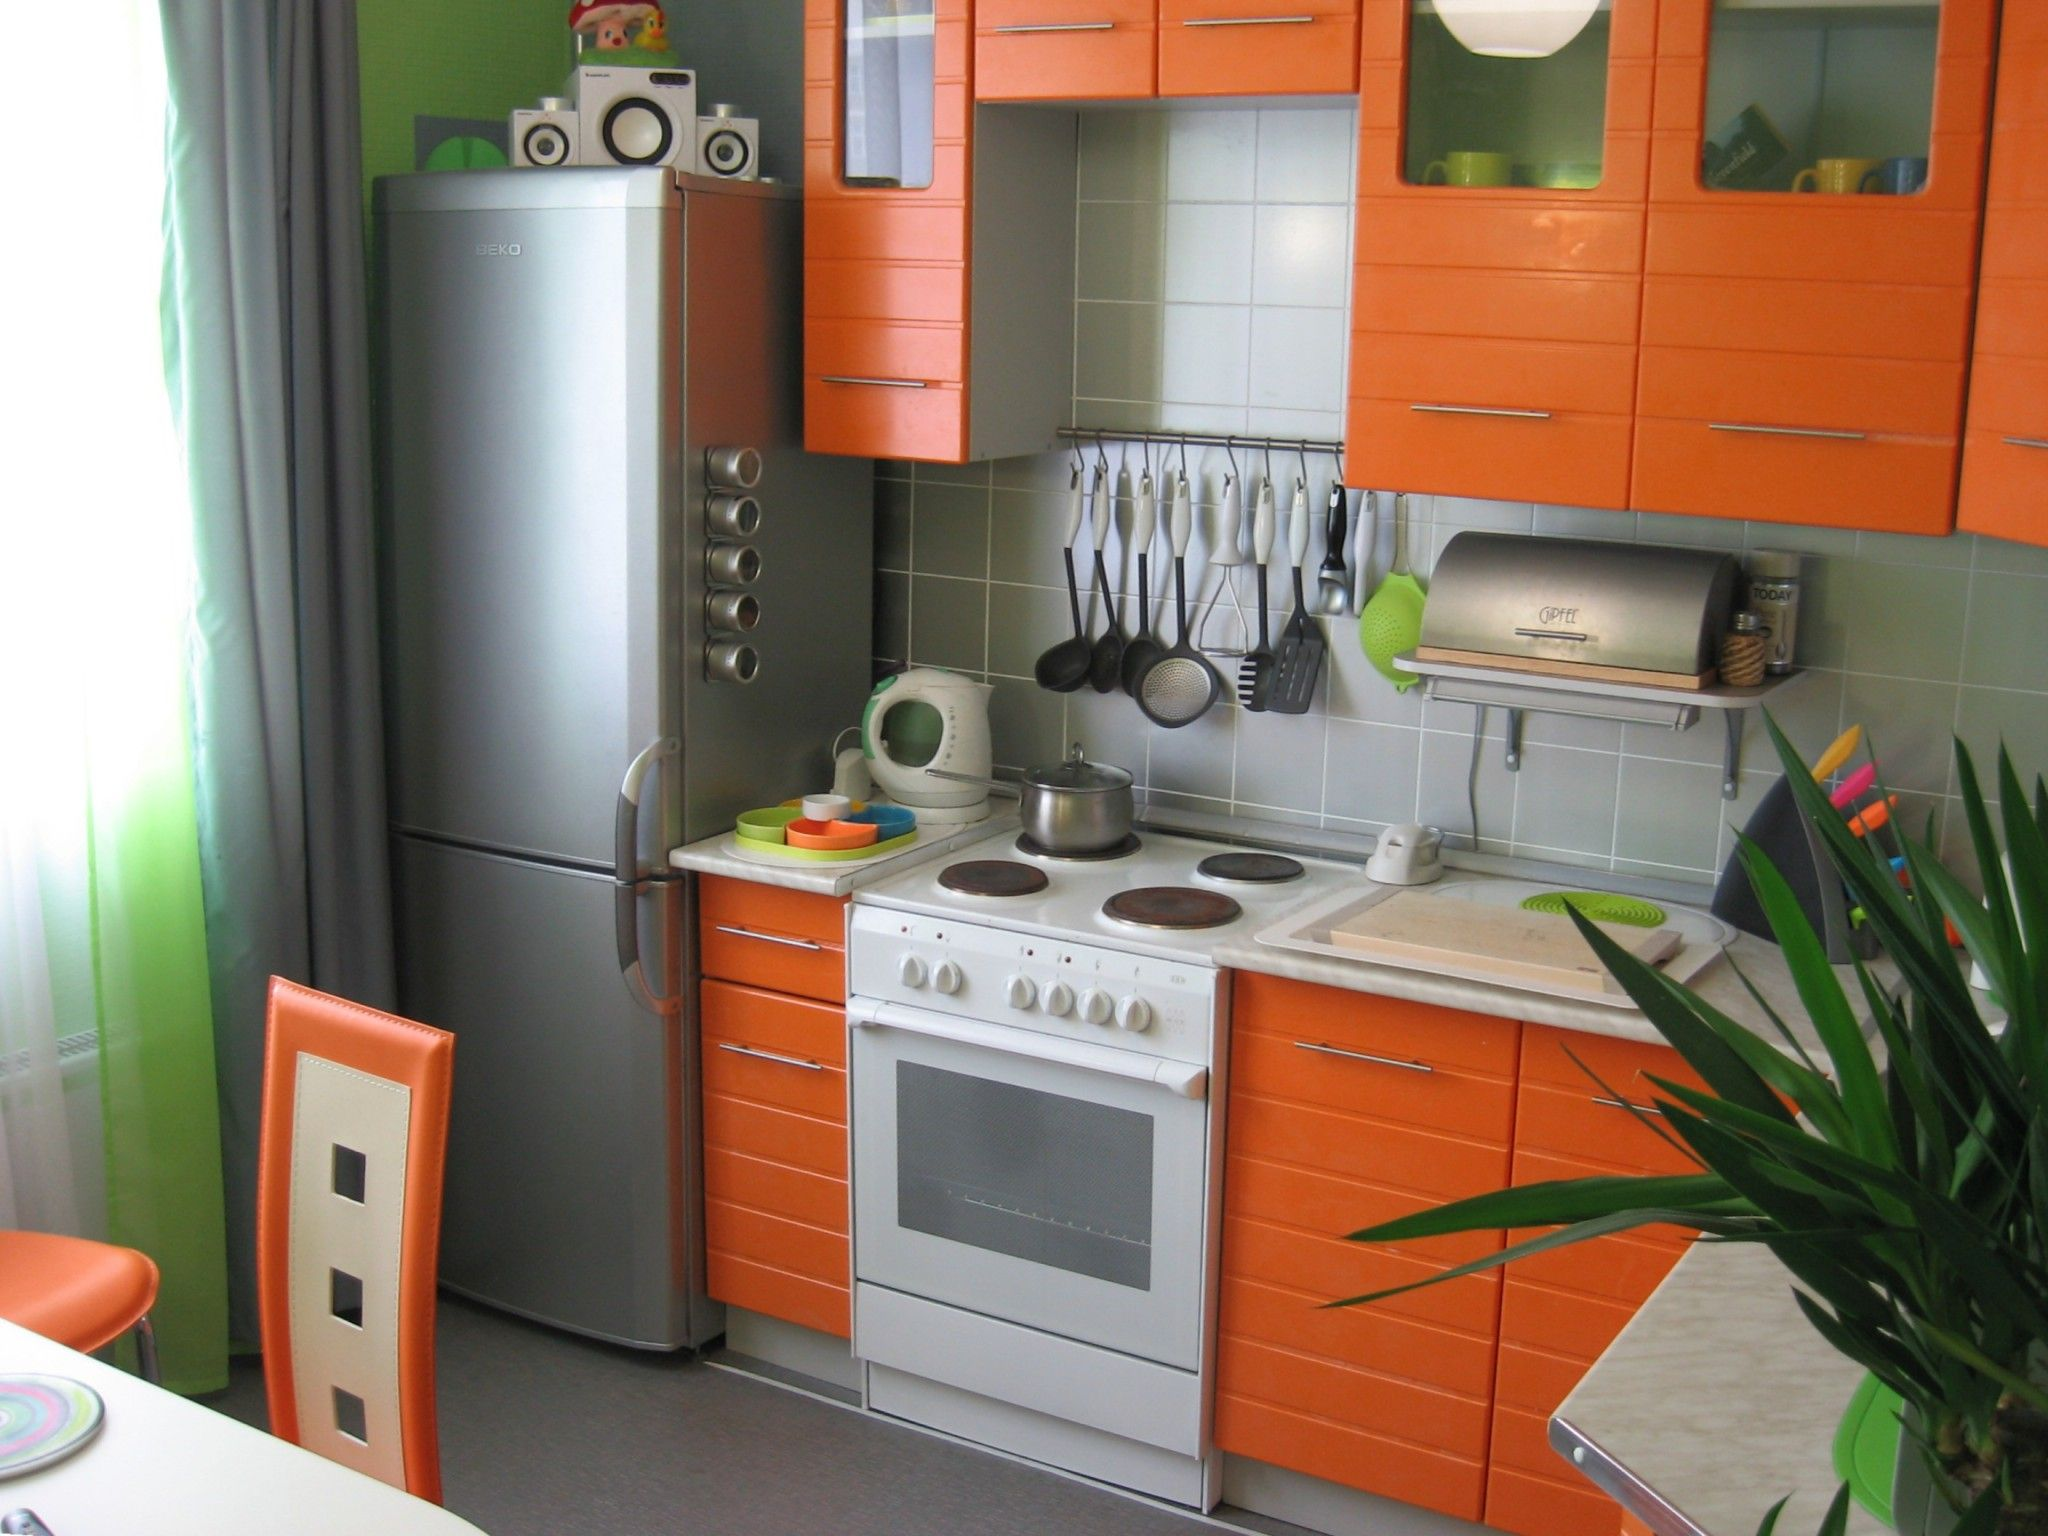 Uncategorized Orange Small Kitchen Appliances small tips for tiny kitchen bright perky orange design of with plants